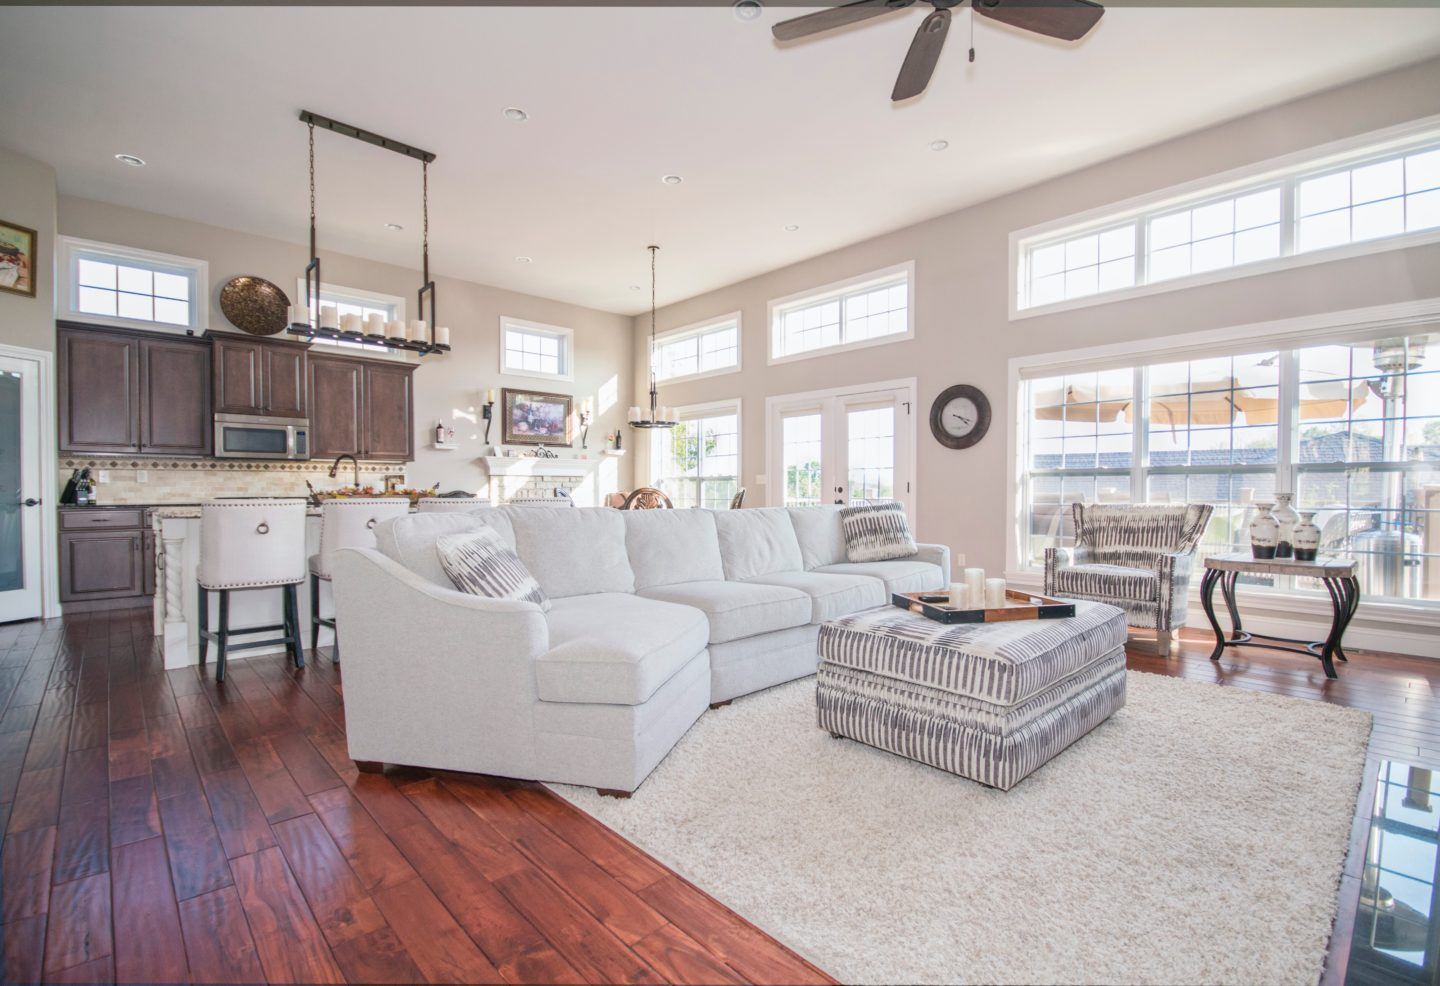 Living Room Decor Mistakes To Avoid This Year At Home In The Future